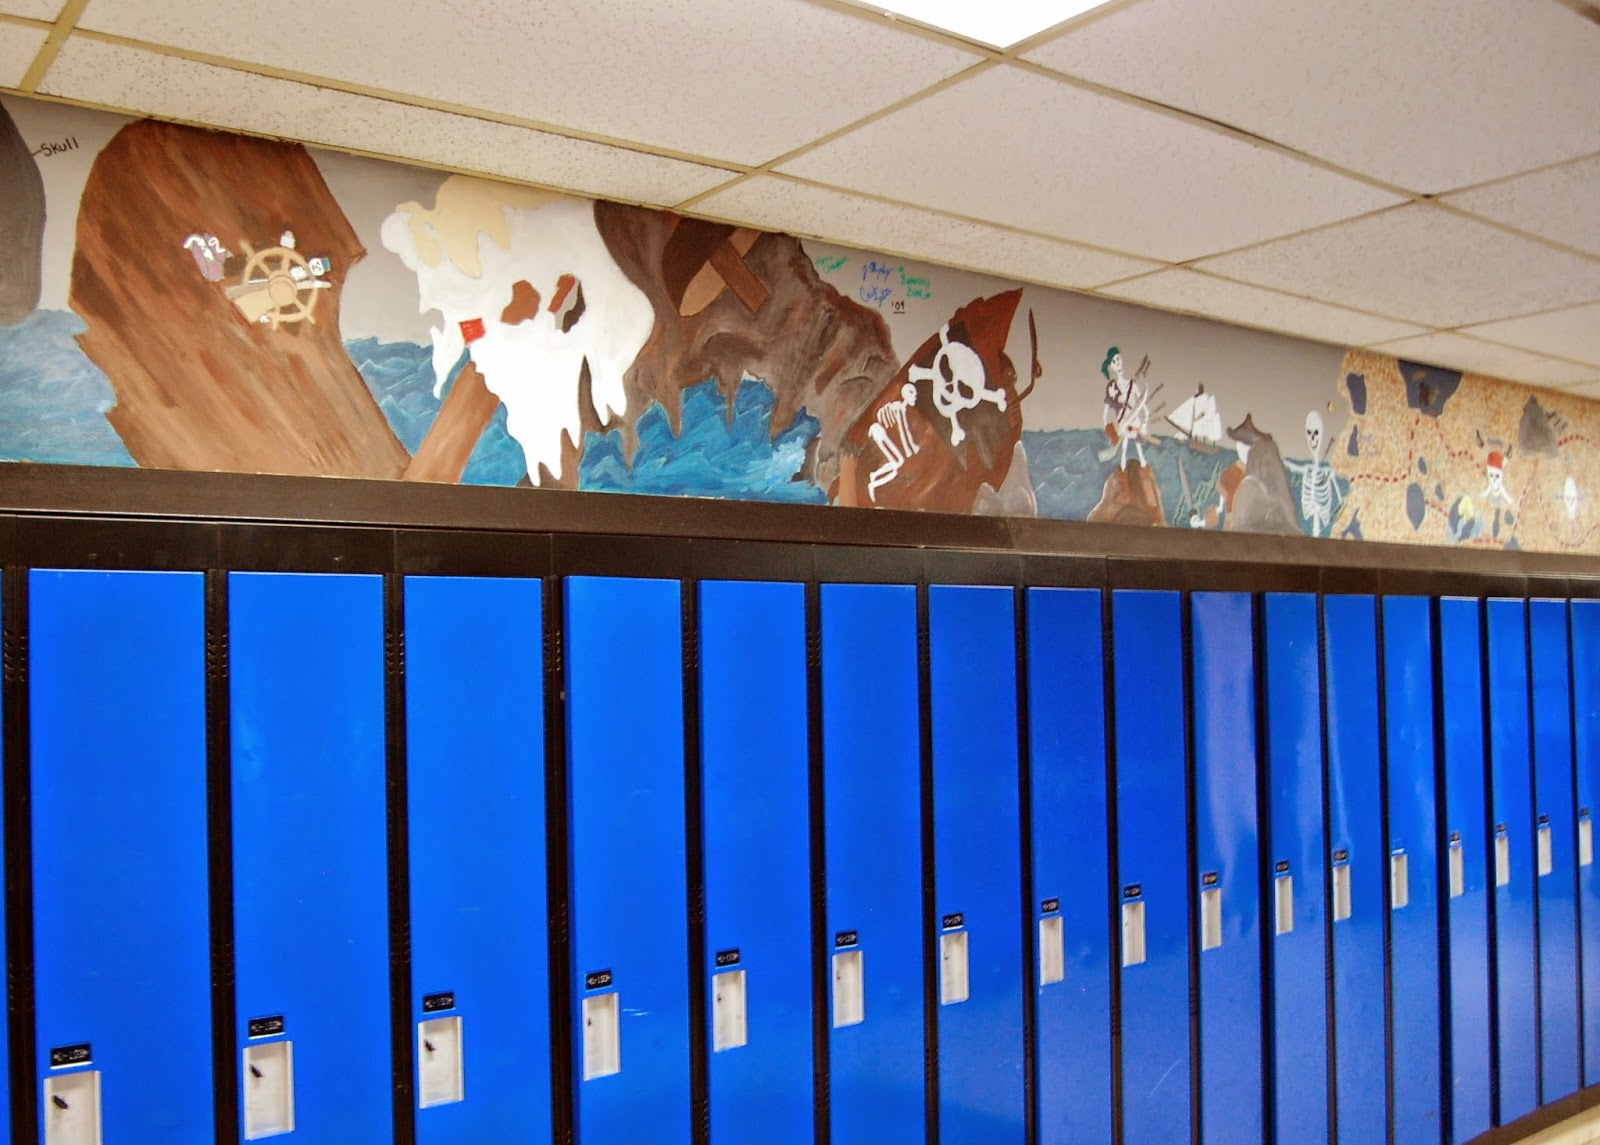 student art above the lockers